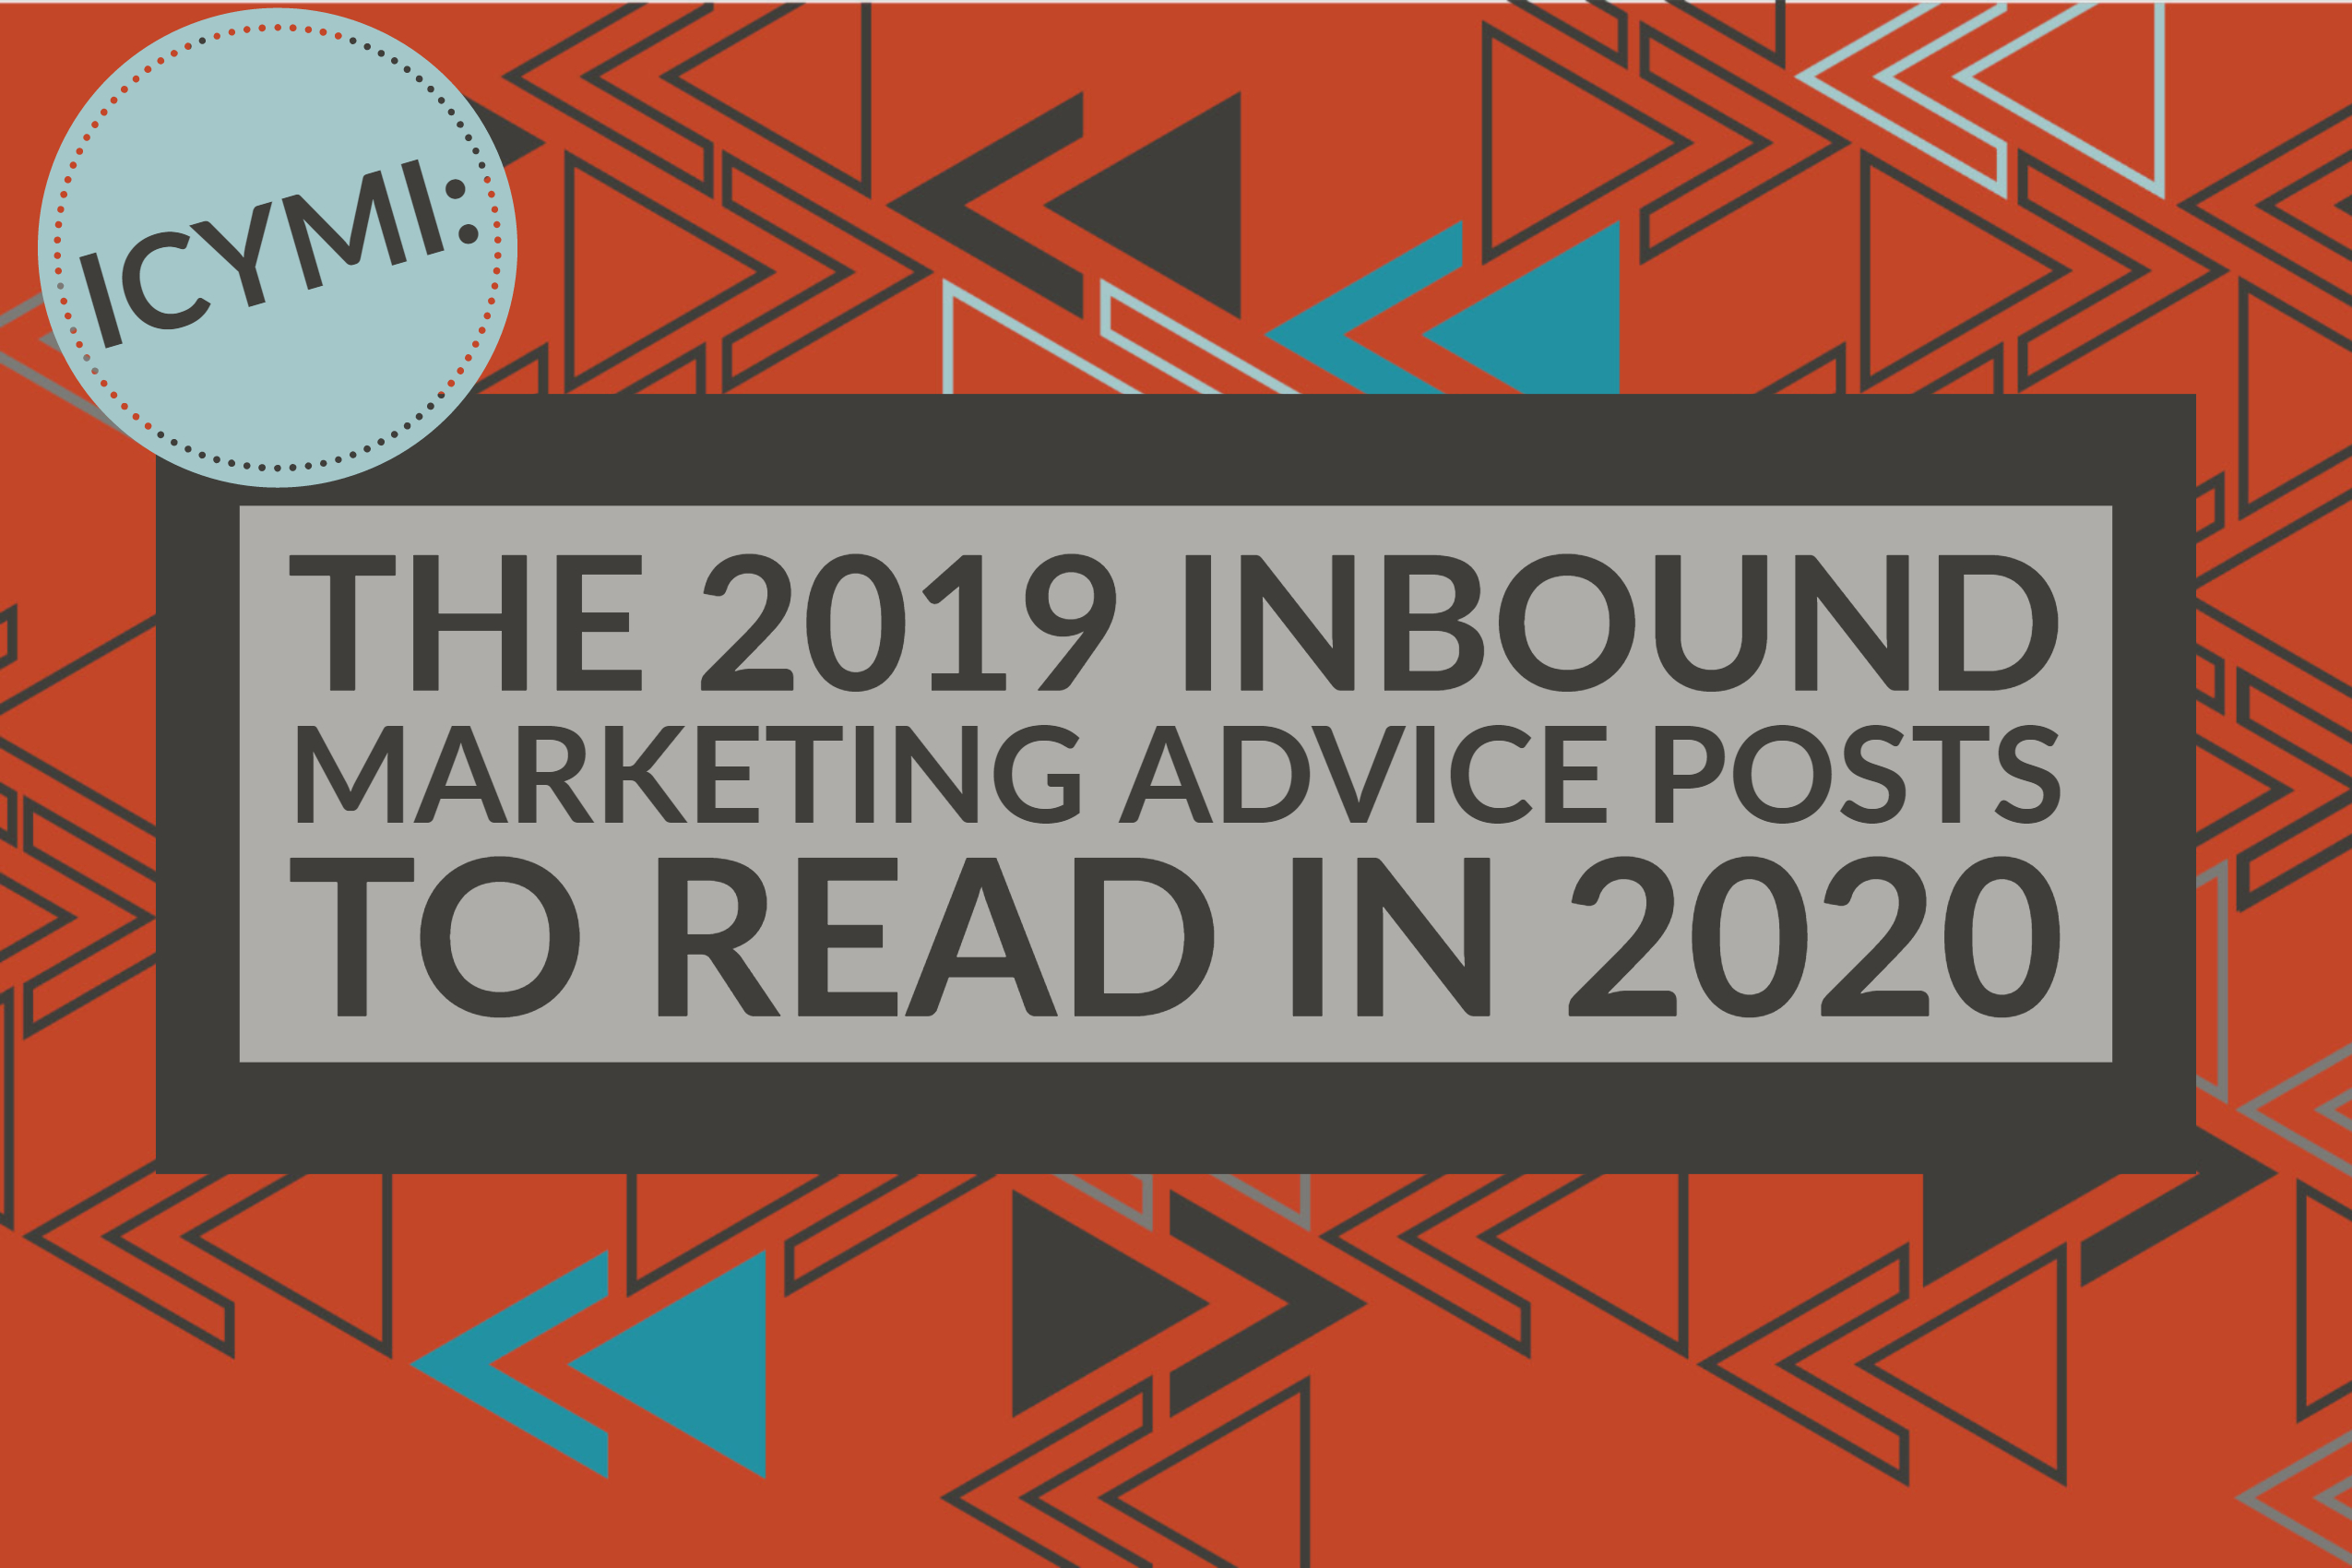 ICYMI_ The 2019 Inbound Marketing Advice Posts To Read In 2020